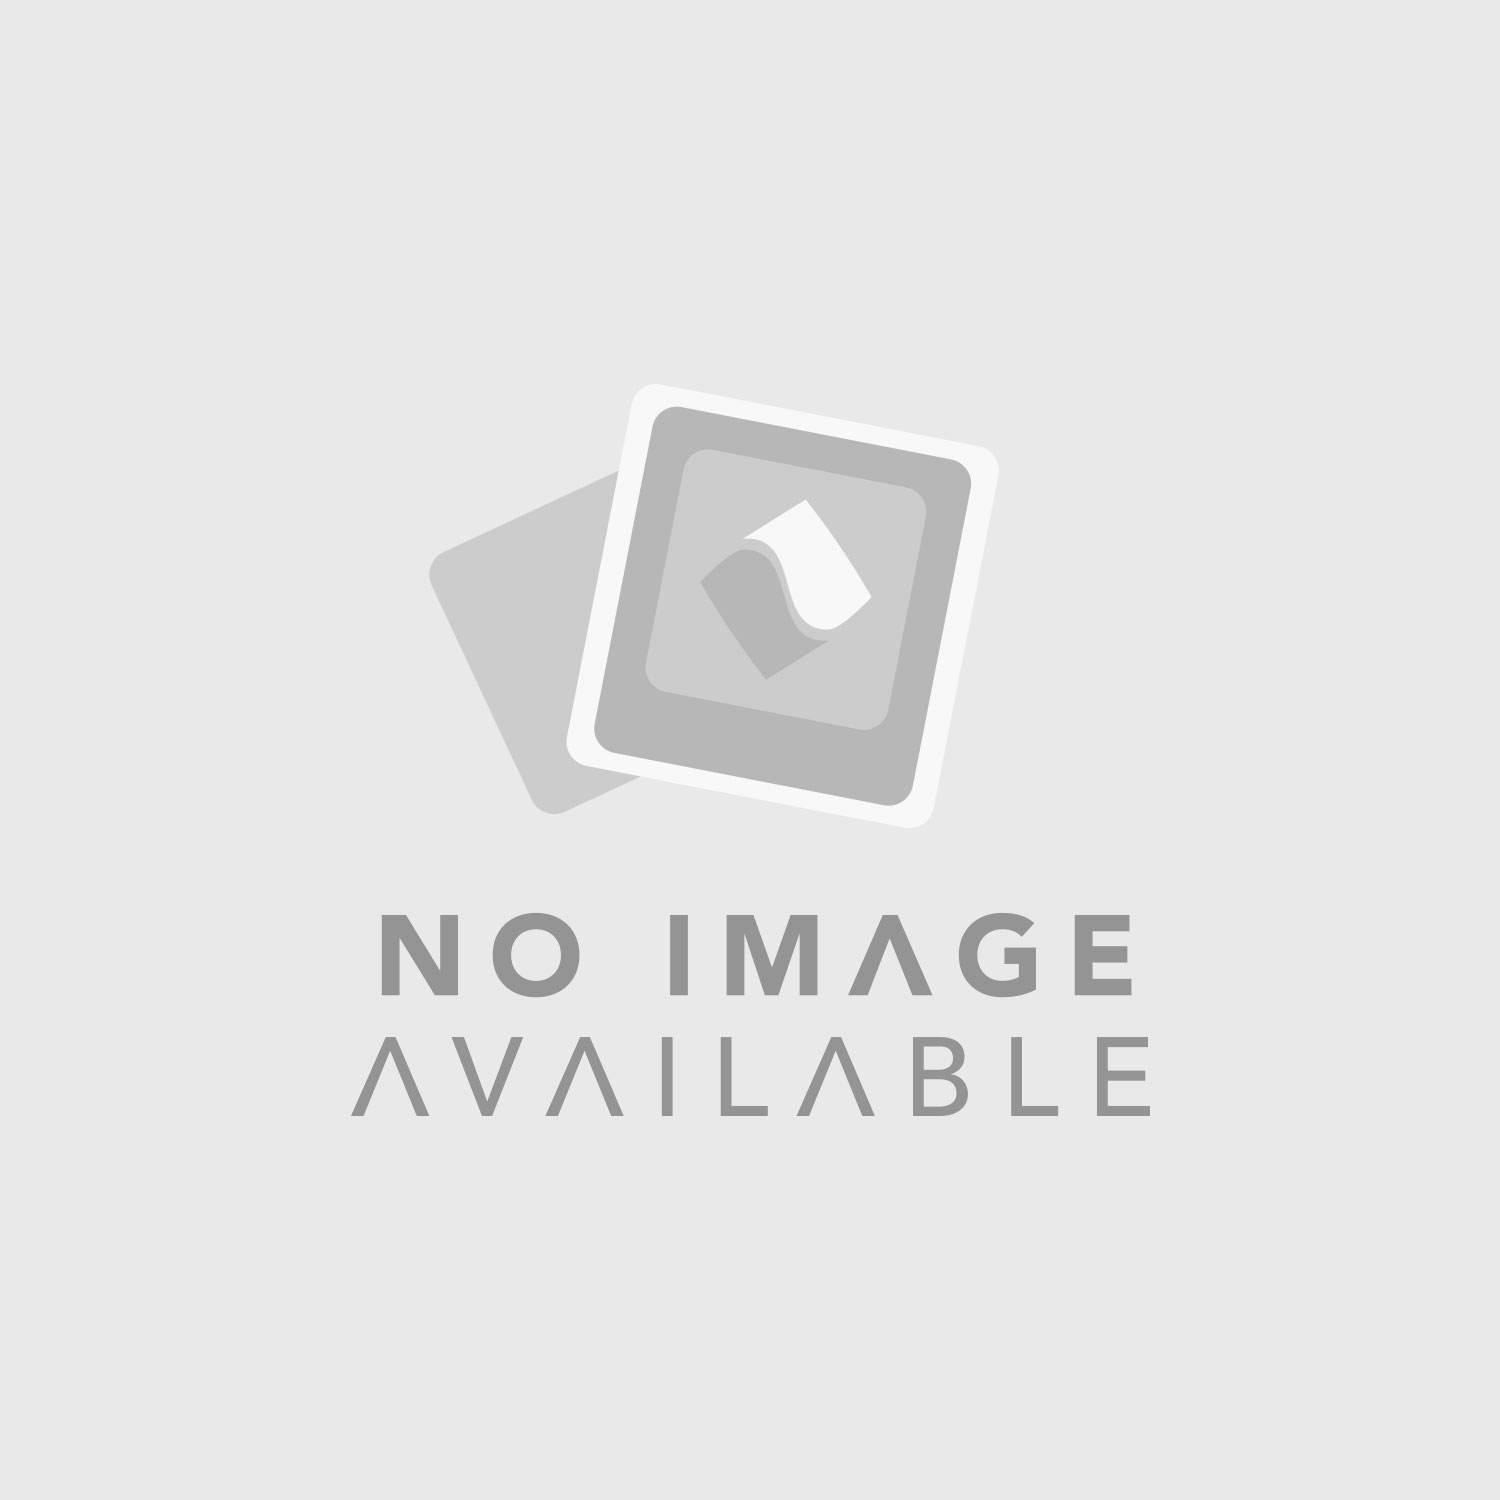 Avid Pro Tools 1-Year Subscription Renewal for Perpetual License (Download, Academic Institution)